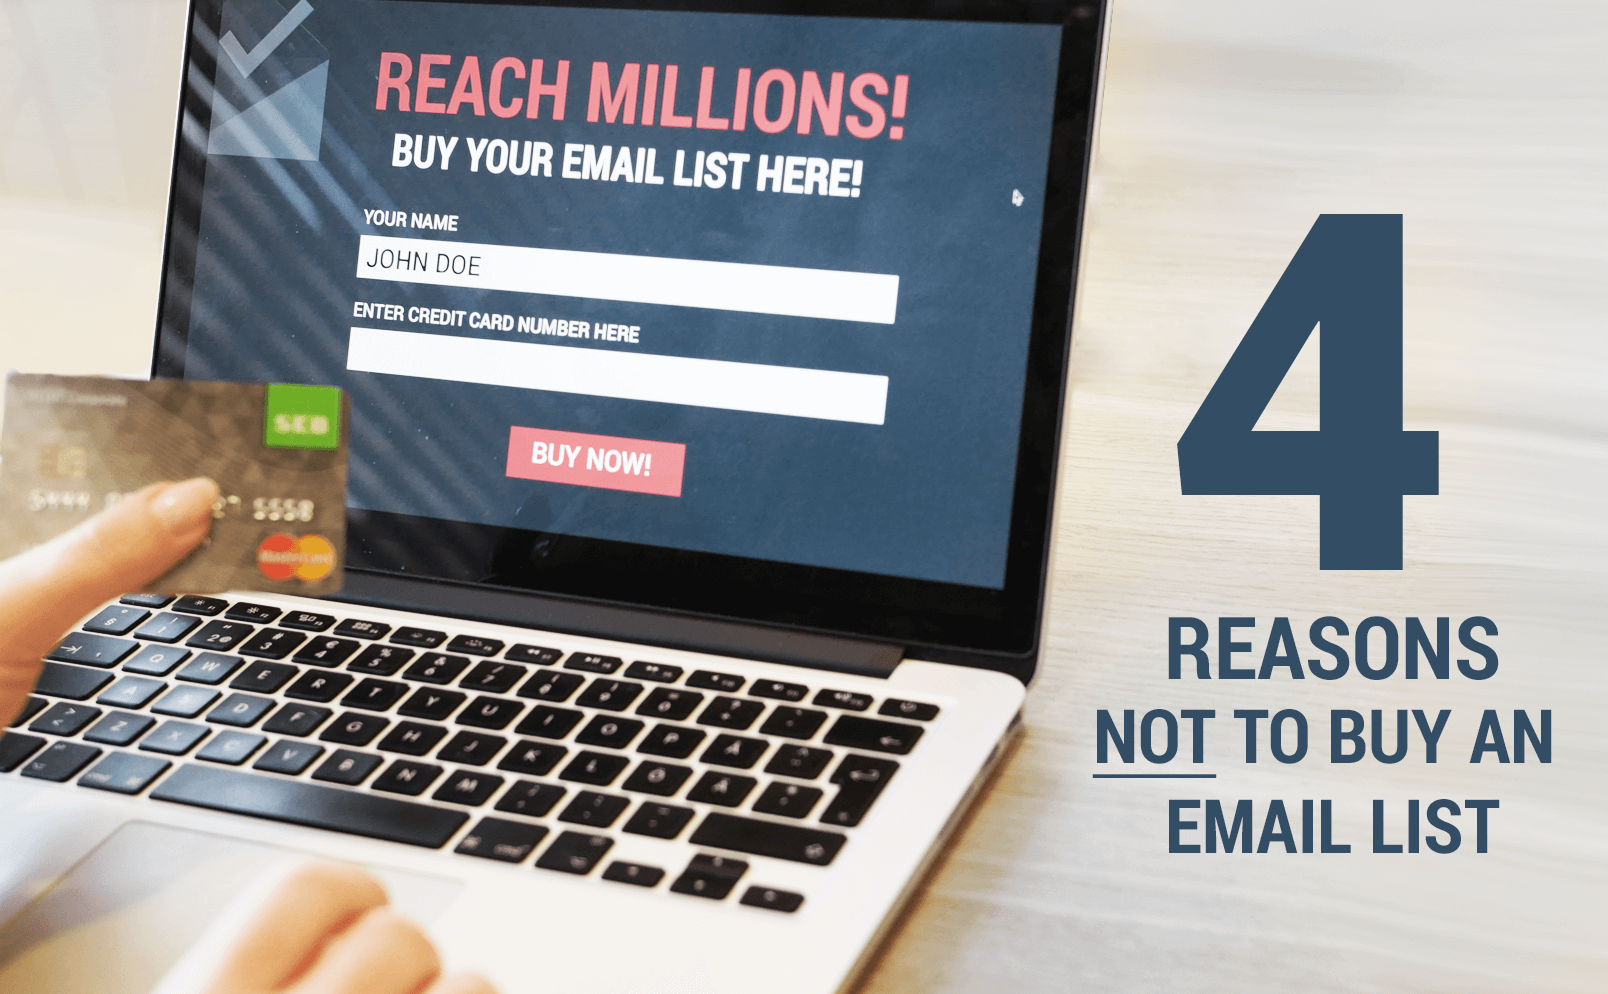 Tempted to Buy an Email List? 4 Reasons Why You Shouldn't